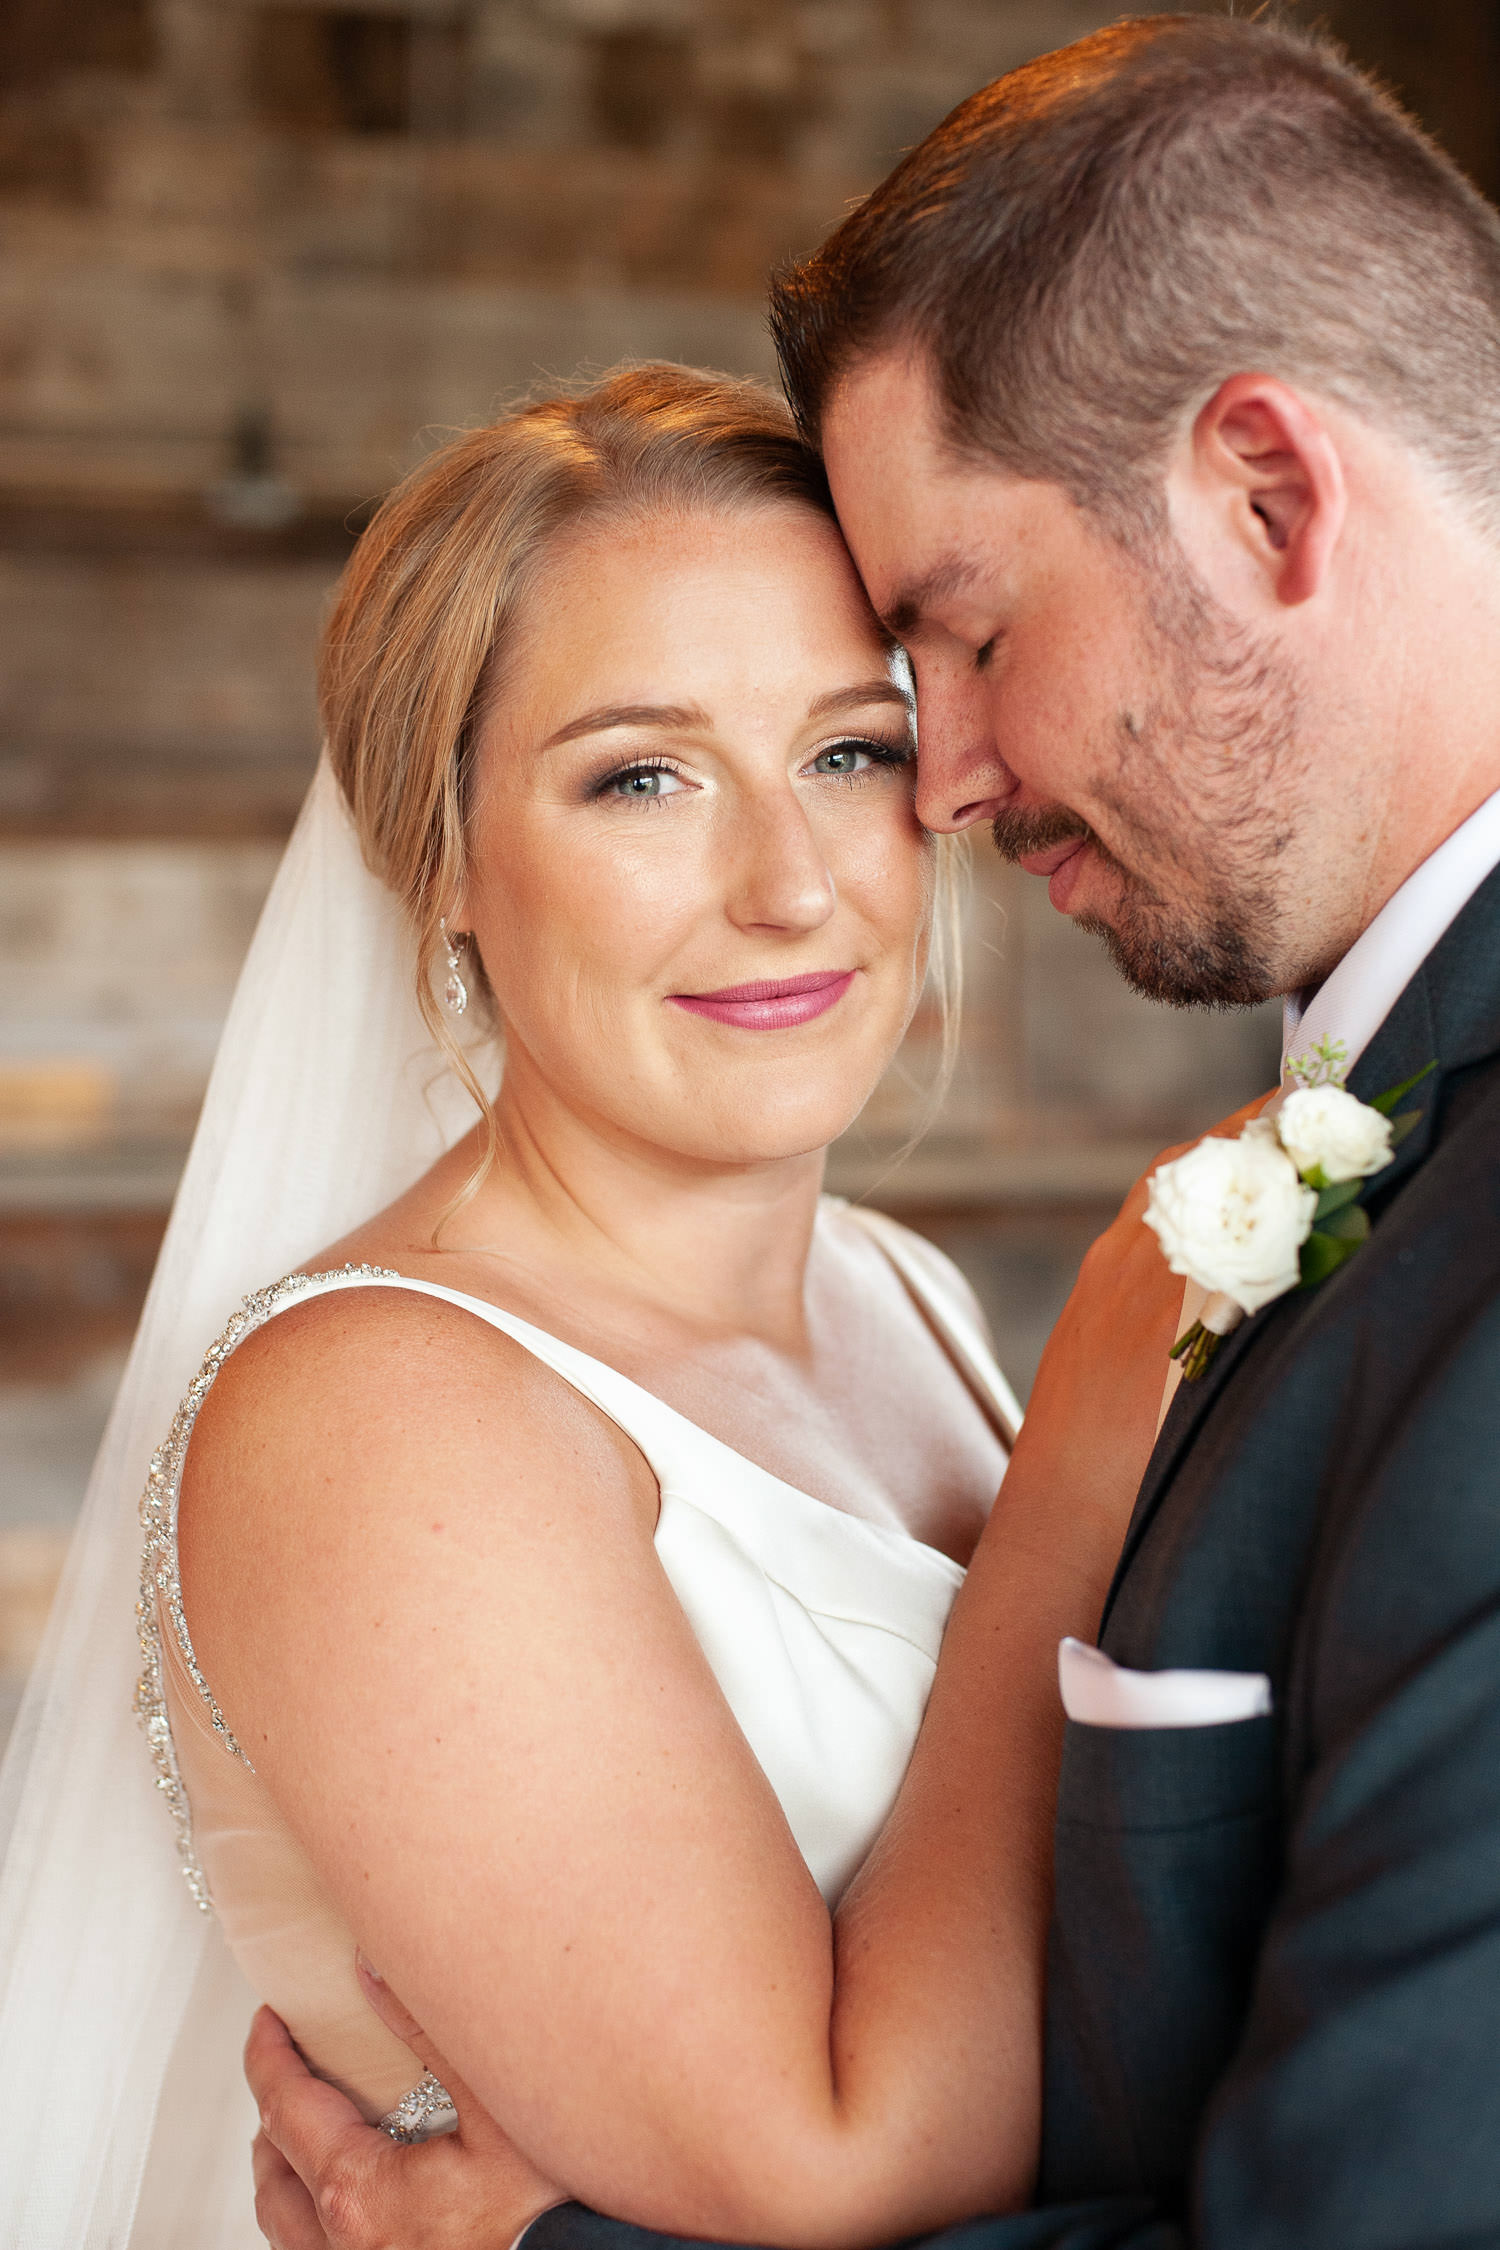 Bridal portrait at Creekside Villa wedding captured by Tara Whittaker Photography